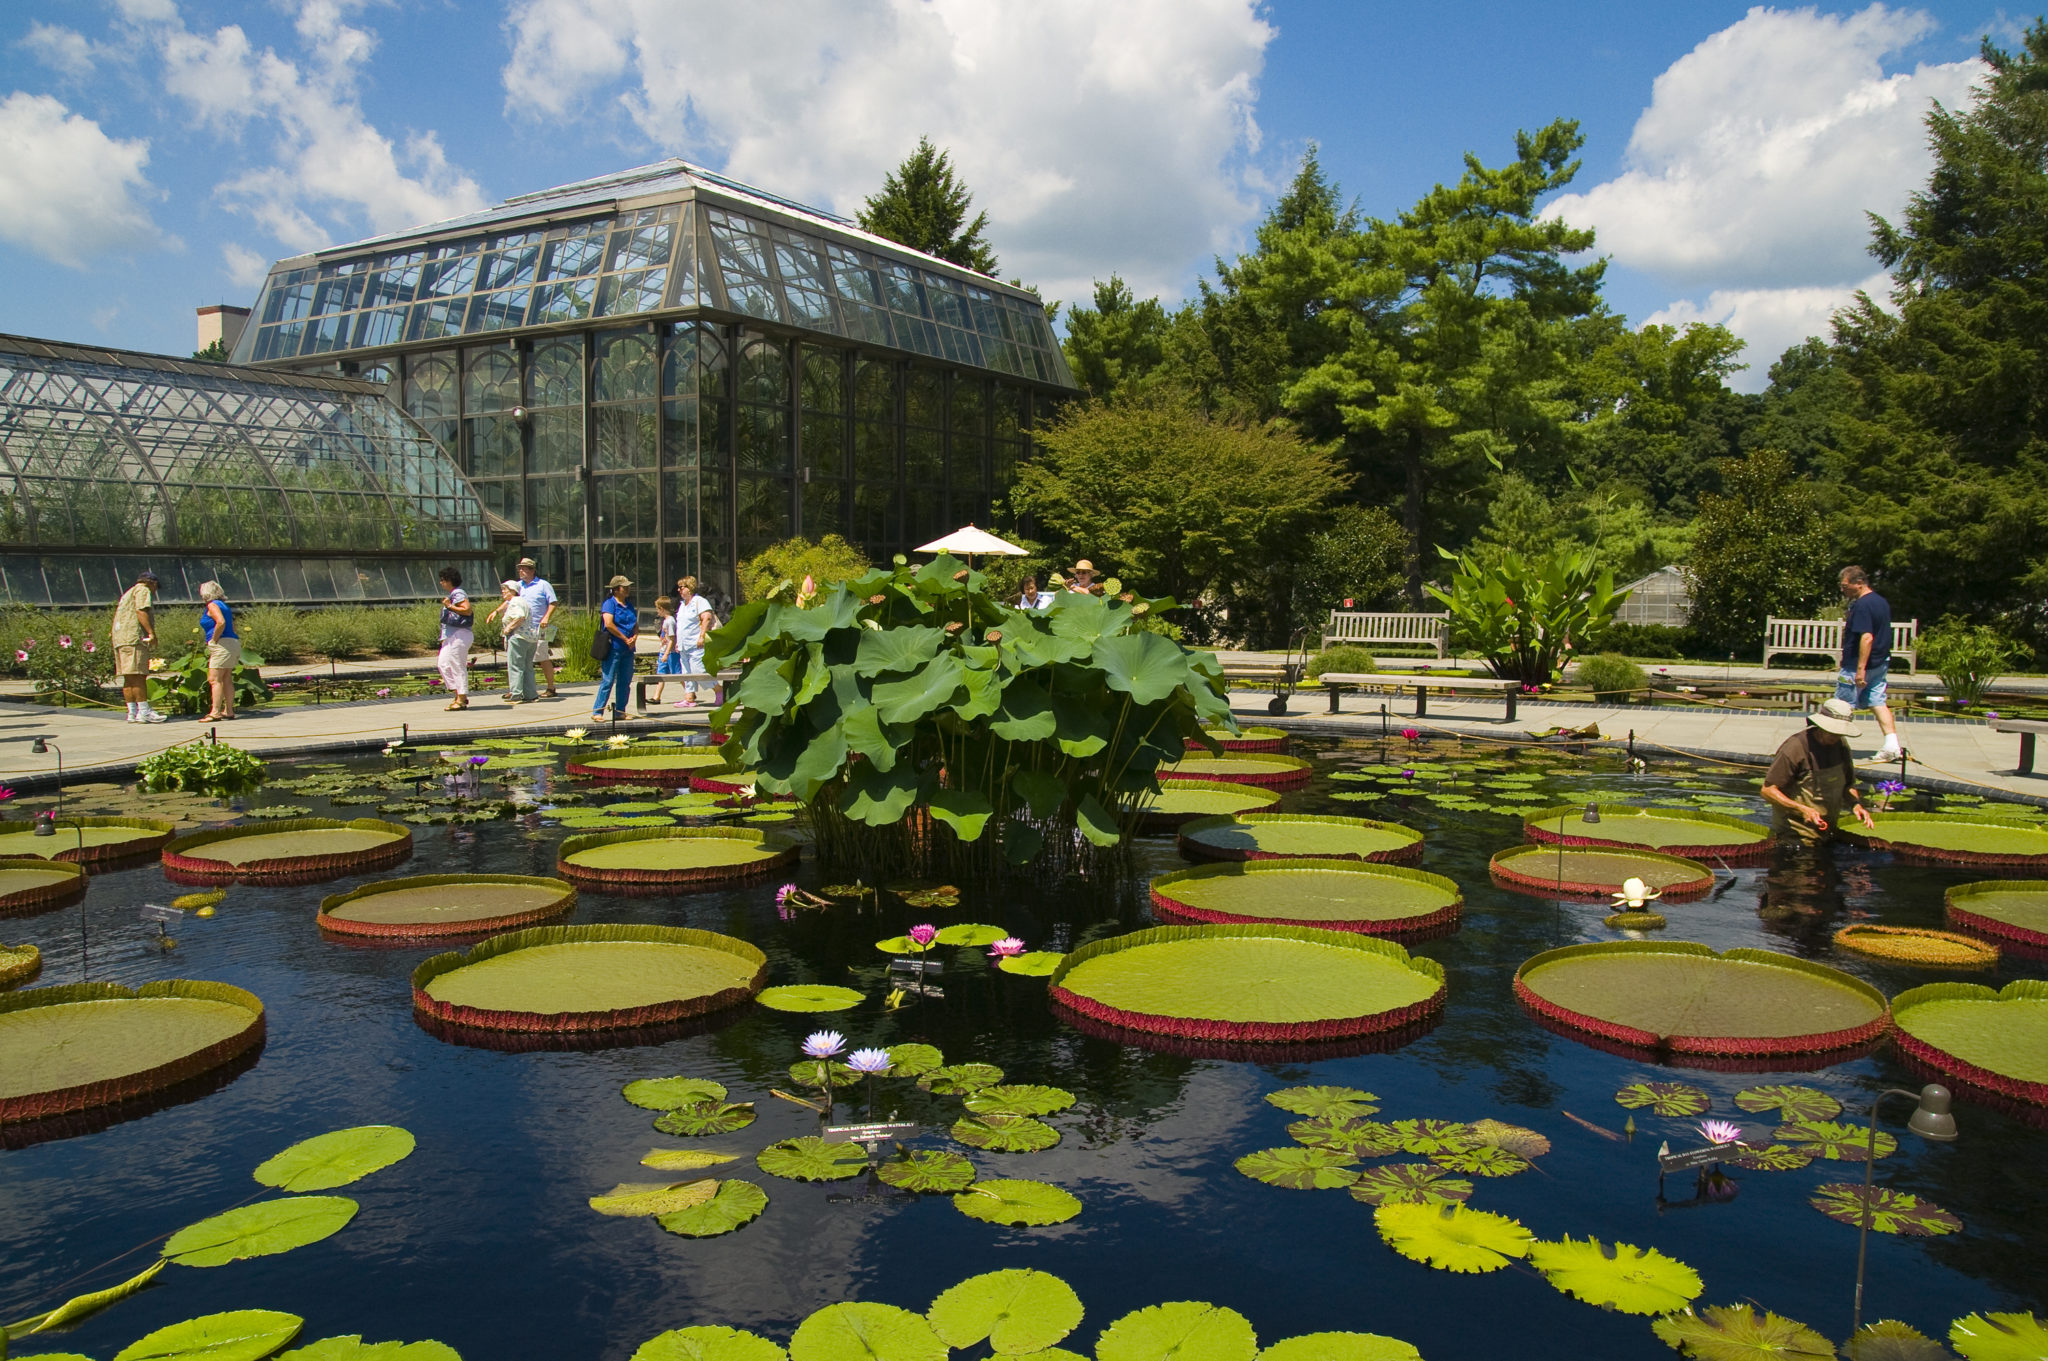 The region's premier horticultural wonderland, Longwood Gardens in Kennett Square, Chester County rambles over 1,050 acres of gardens, woodlands and meadows.